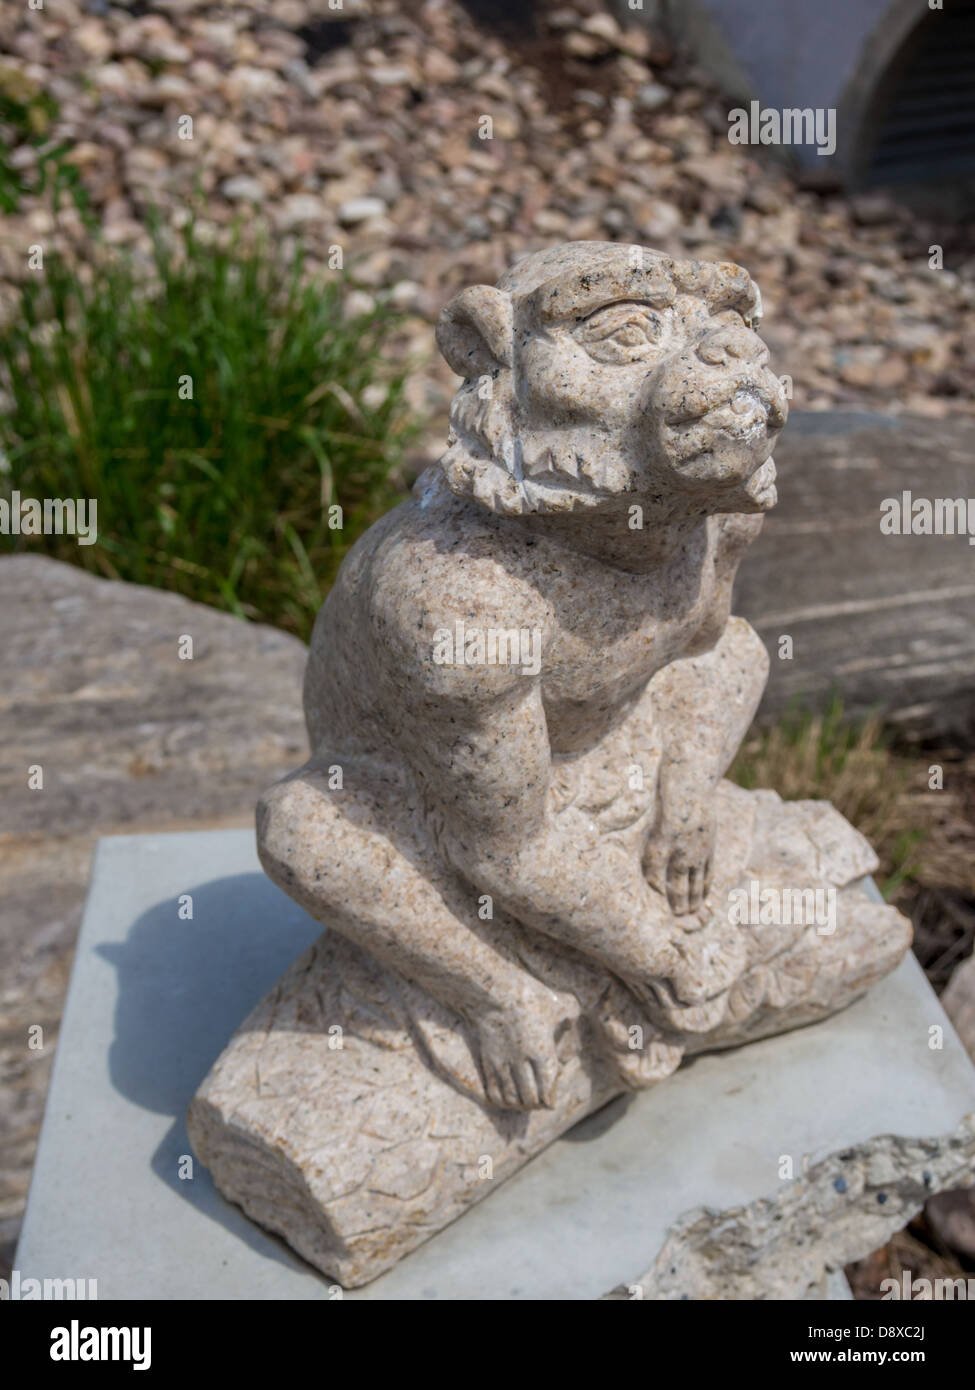 Scenic Stone Carving Garden Stock Photos  Stone Carving Garden Stock  With Entrancing Stone Monkey Statue In Edmonton Chinese Garden  Stock Image With Extraordinary How To Attract Hedgehogs To Your Garden Also Black Garden Spider In Addition Nail Salons Covent Garden And Garden Storage Nz As Well As Garden Fountain Additionally Garden Show From Alamycom With   Entrancing Stone Carving Garden Stock Photos  Stone Carving Garden Stock  With Extraordinary Stone Monkey Statue In Edmonton Chinese Garden  Stock Image And Scenic How To Attract Hedgehogs To Your Garden Also Black Garden Spider In Addition Nail Salons Covent Garden From Alamycom